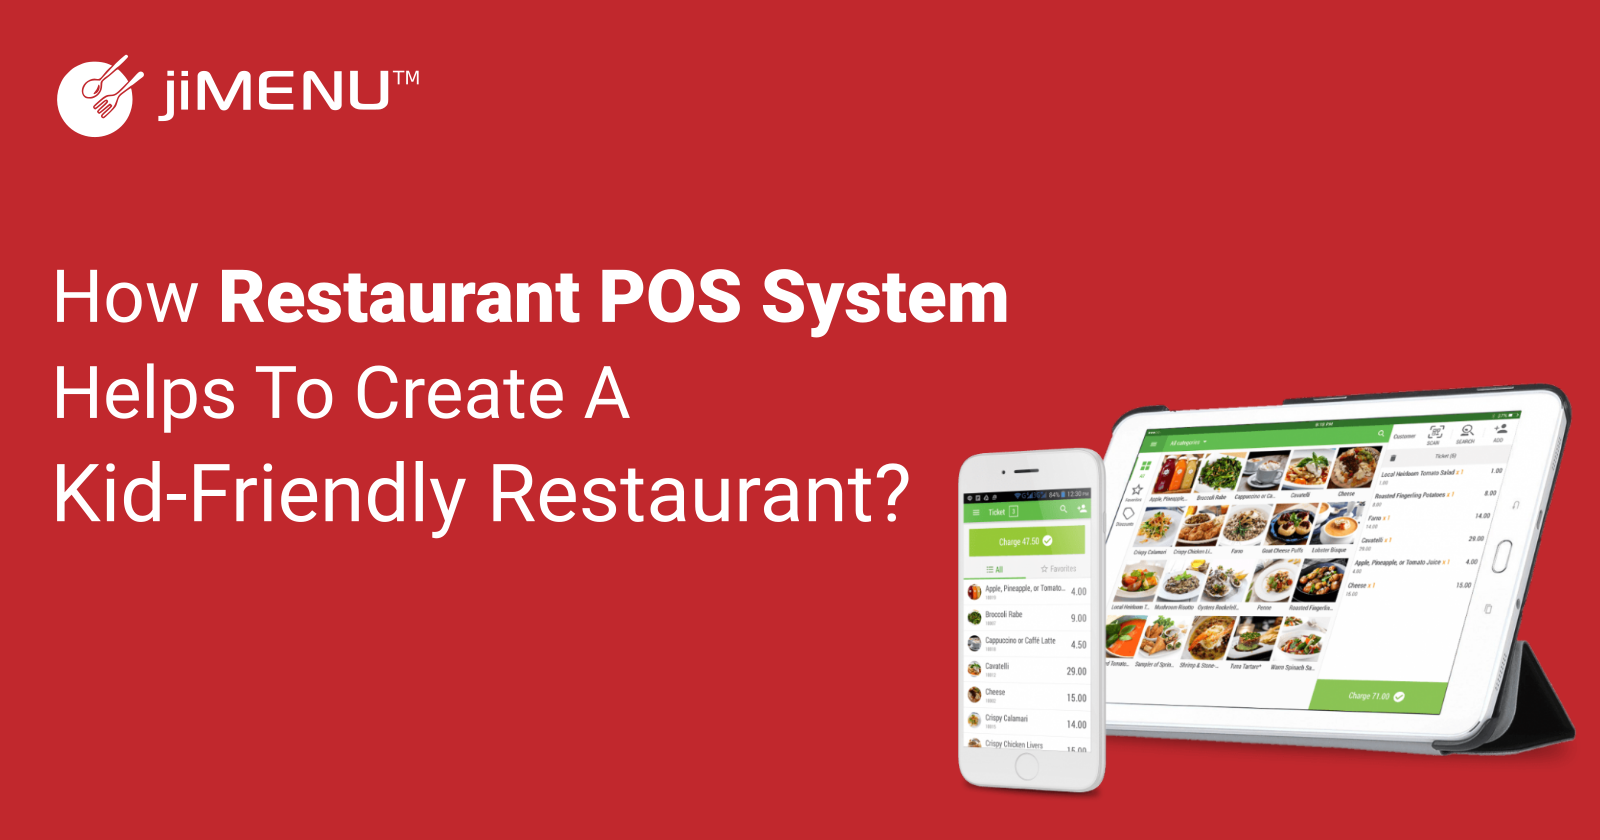 How Restaurant POS System Helps to Create a Kid-Friendly Restaurant?